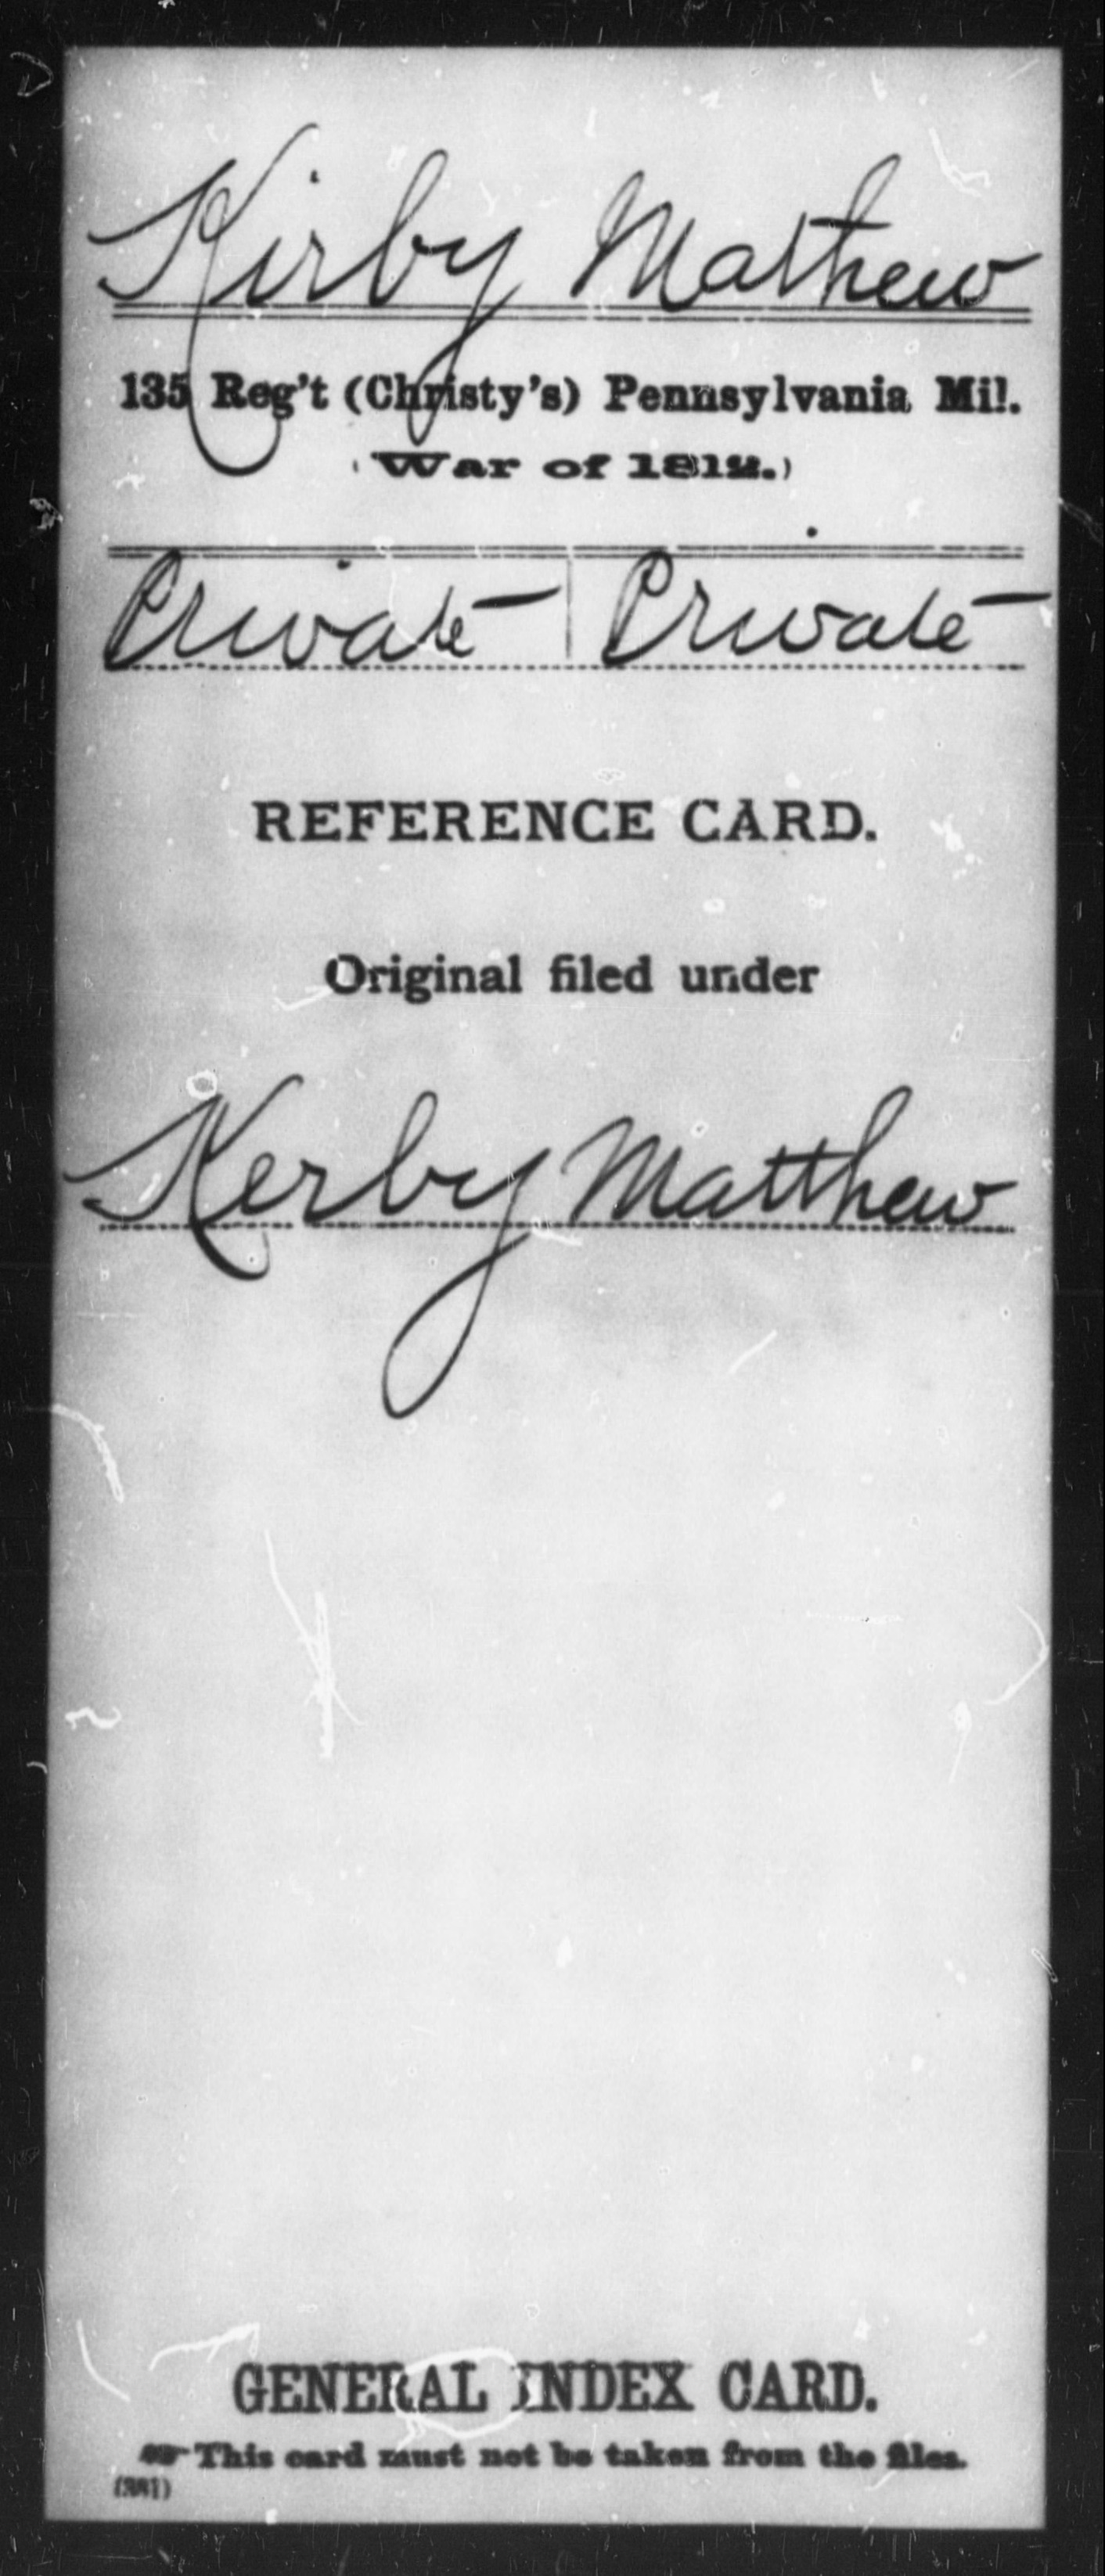 Kirby, Mathew - State: Pennsylvania - Regiment: 135 (Christy's) Pennsylvania Mil